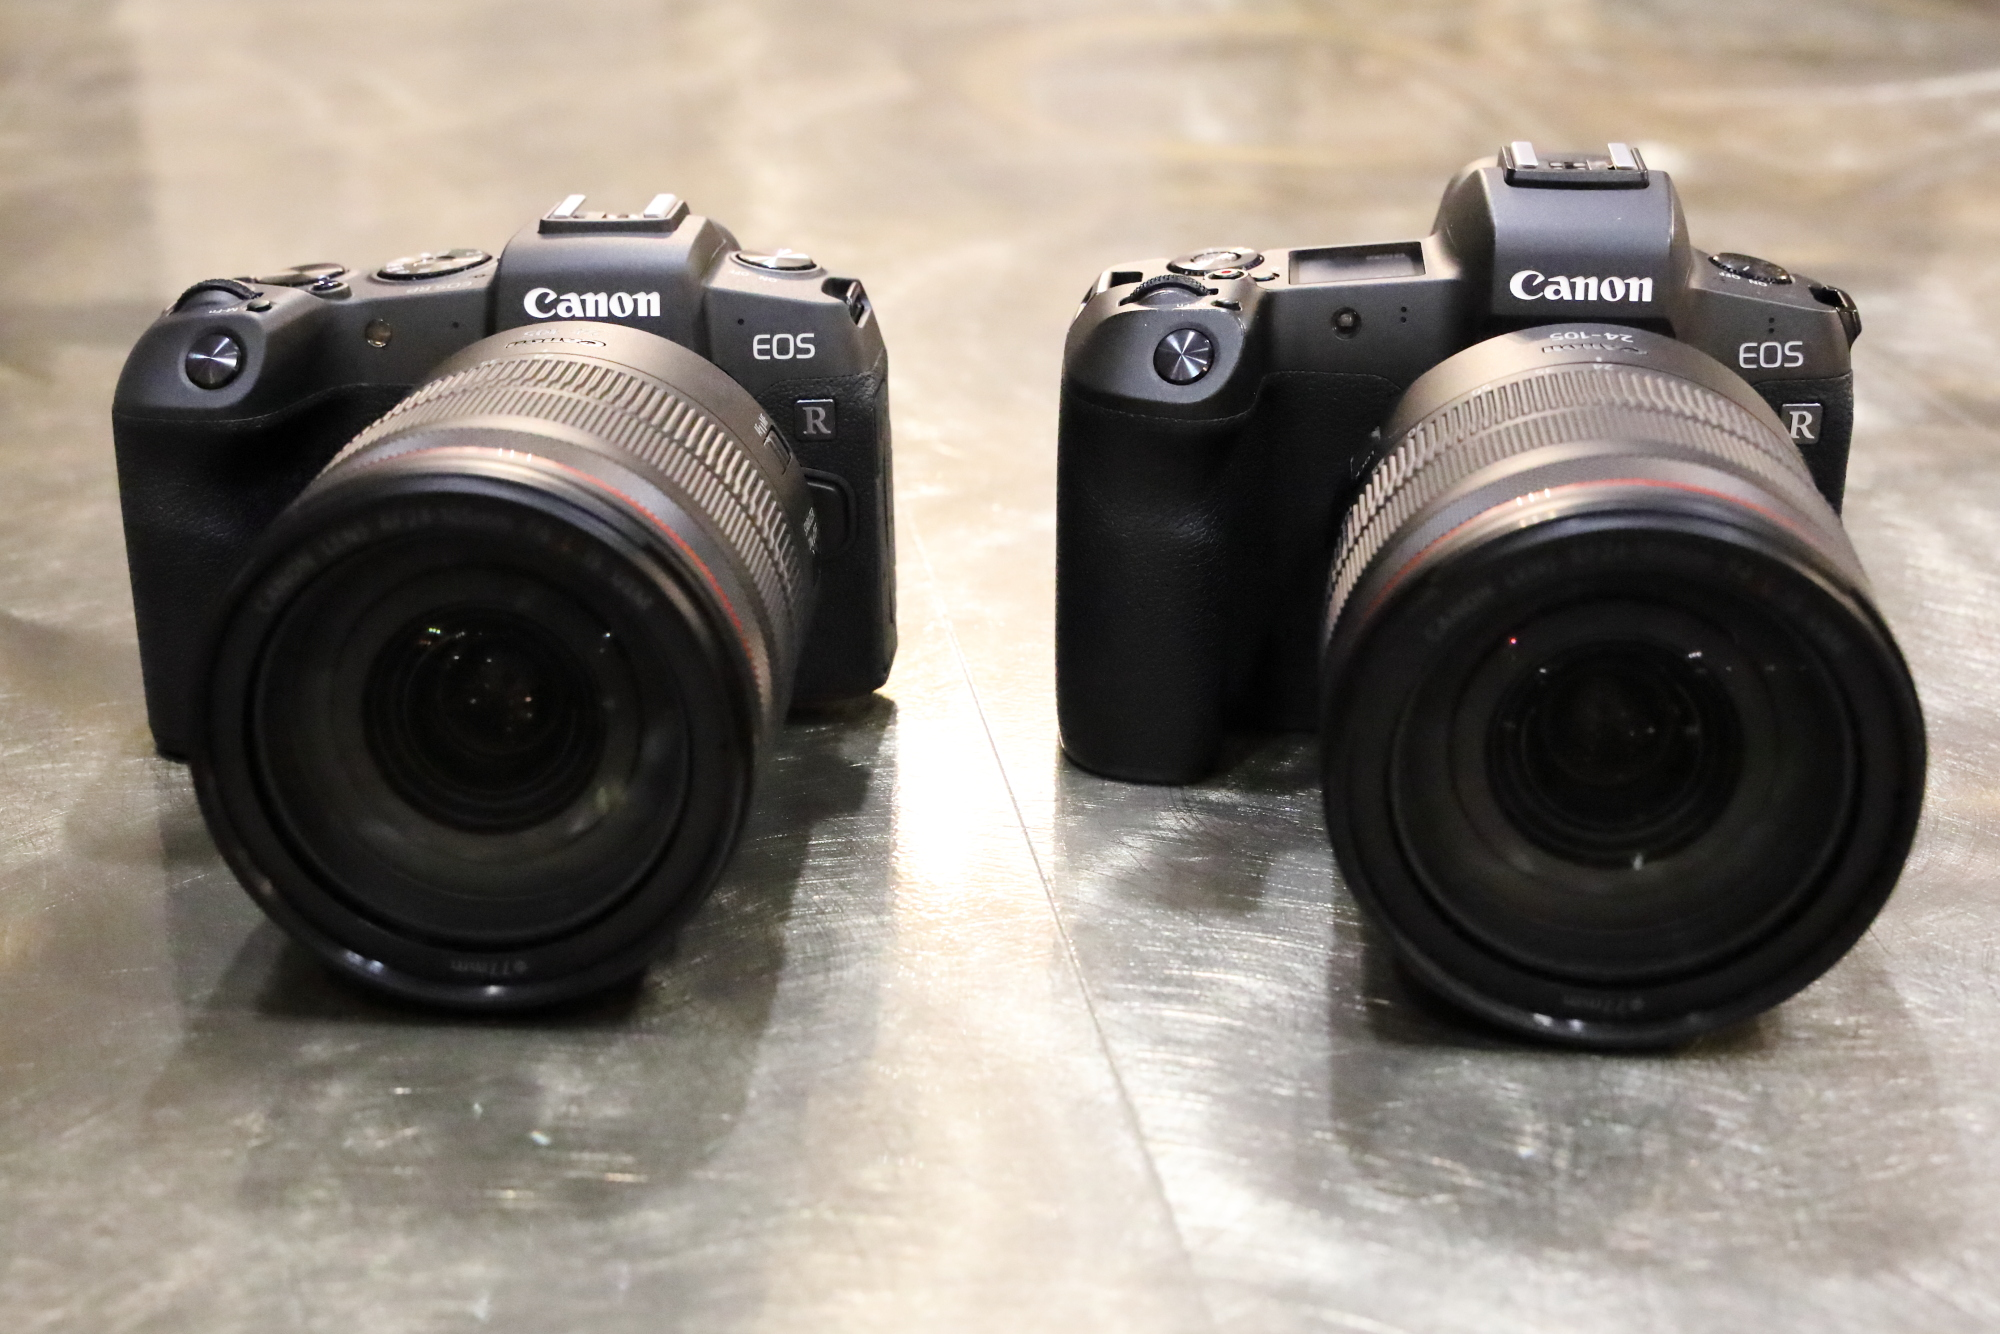 Hands-on with the Canon EOS RP - Anum World